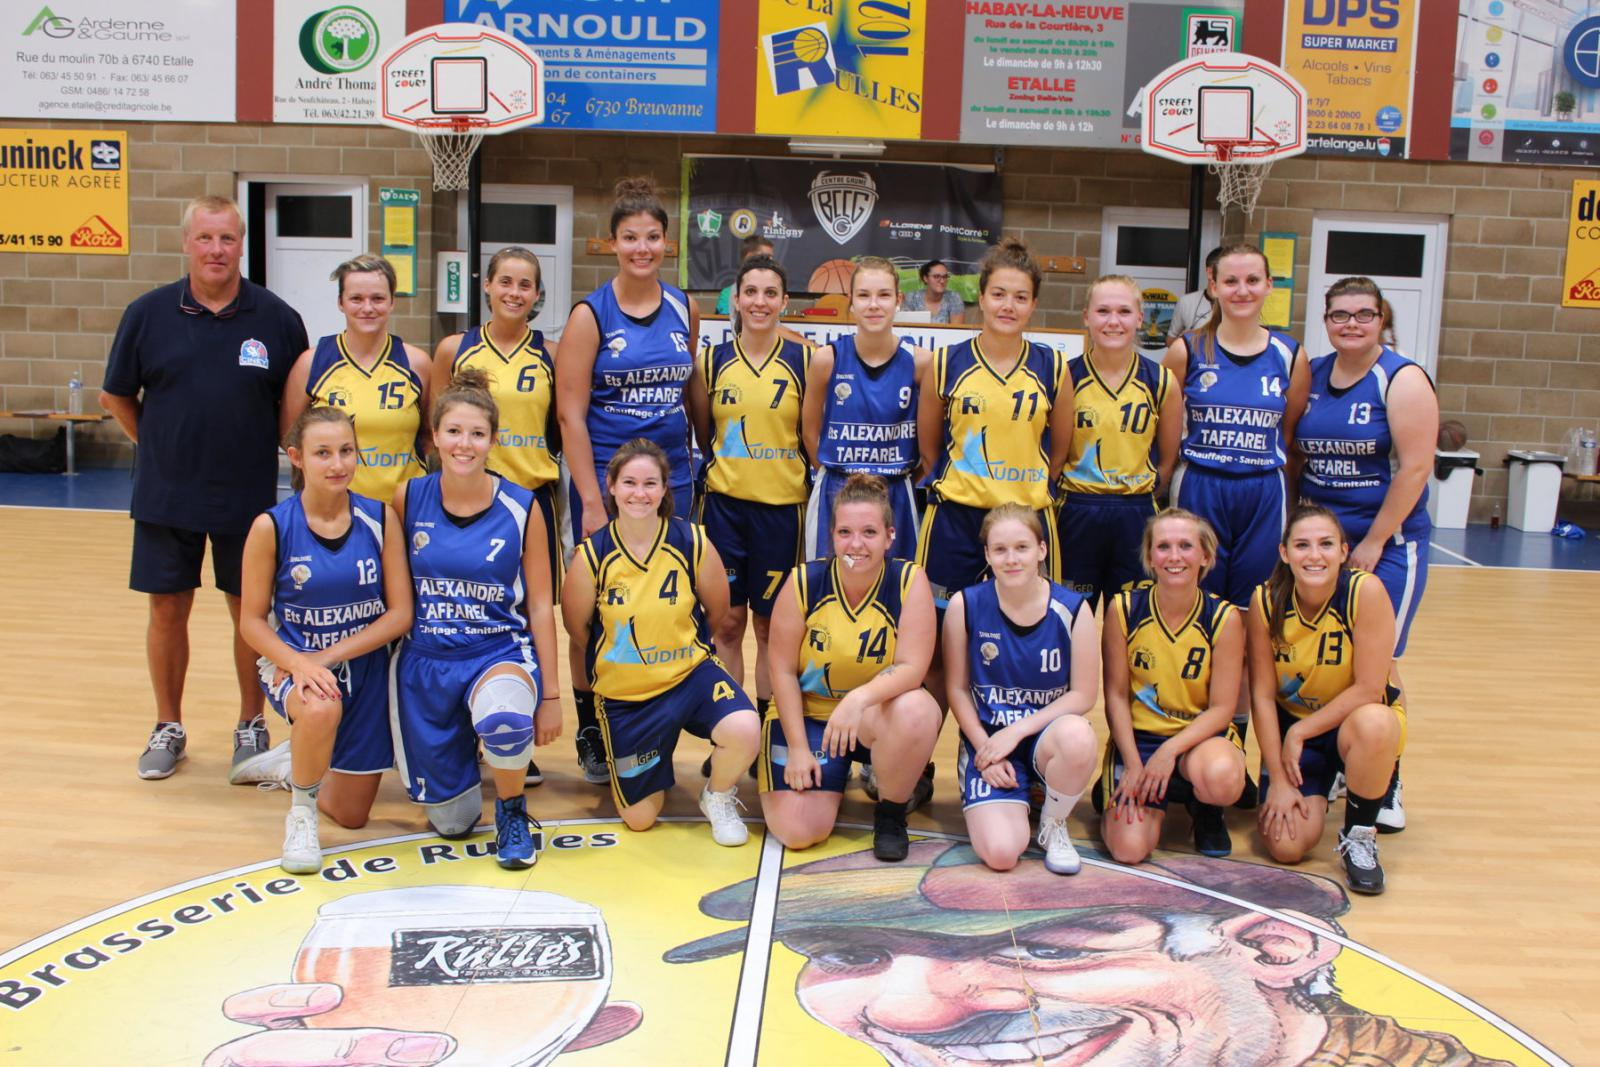 24/08/19 : P2 dames C - Jumelage CENTRE GAUME LA RULLE / CINEY